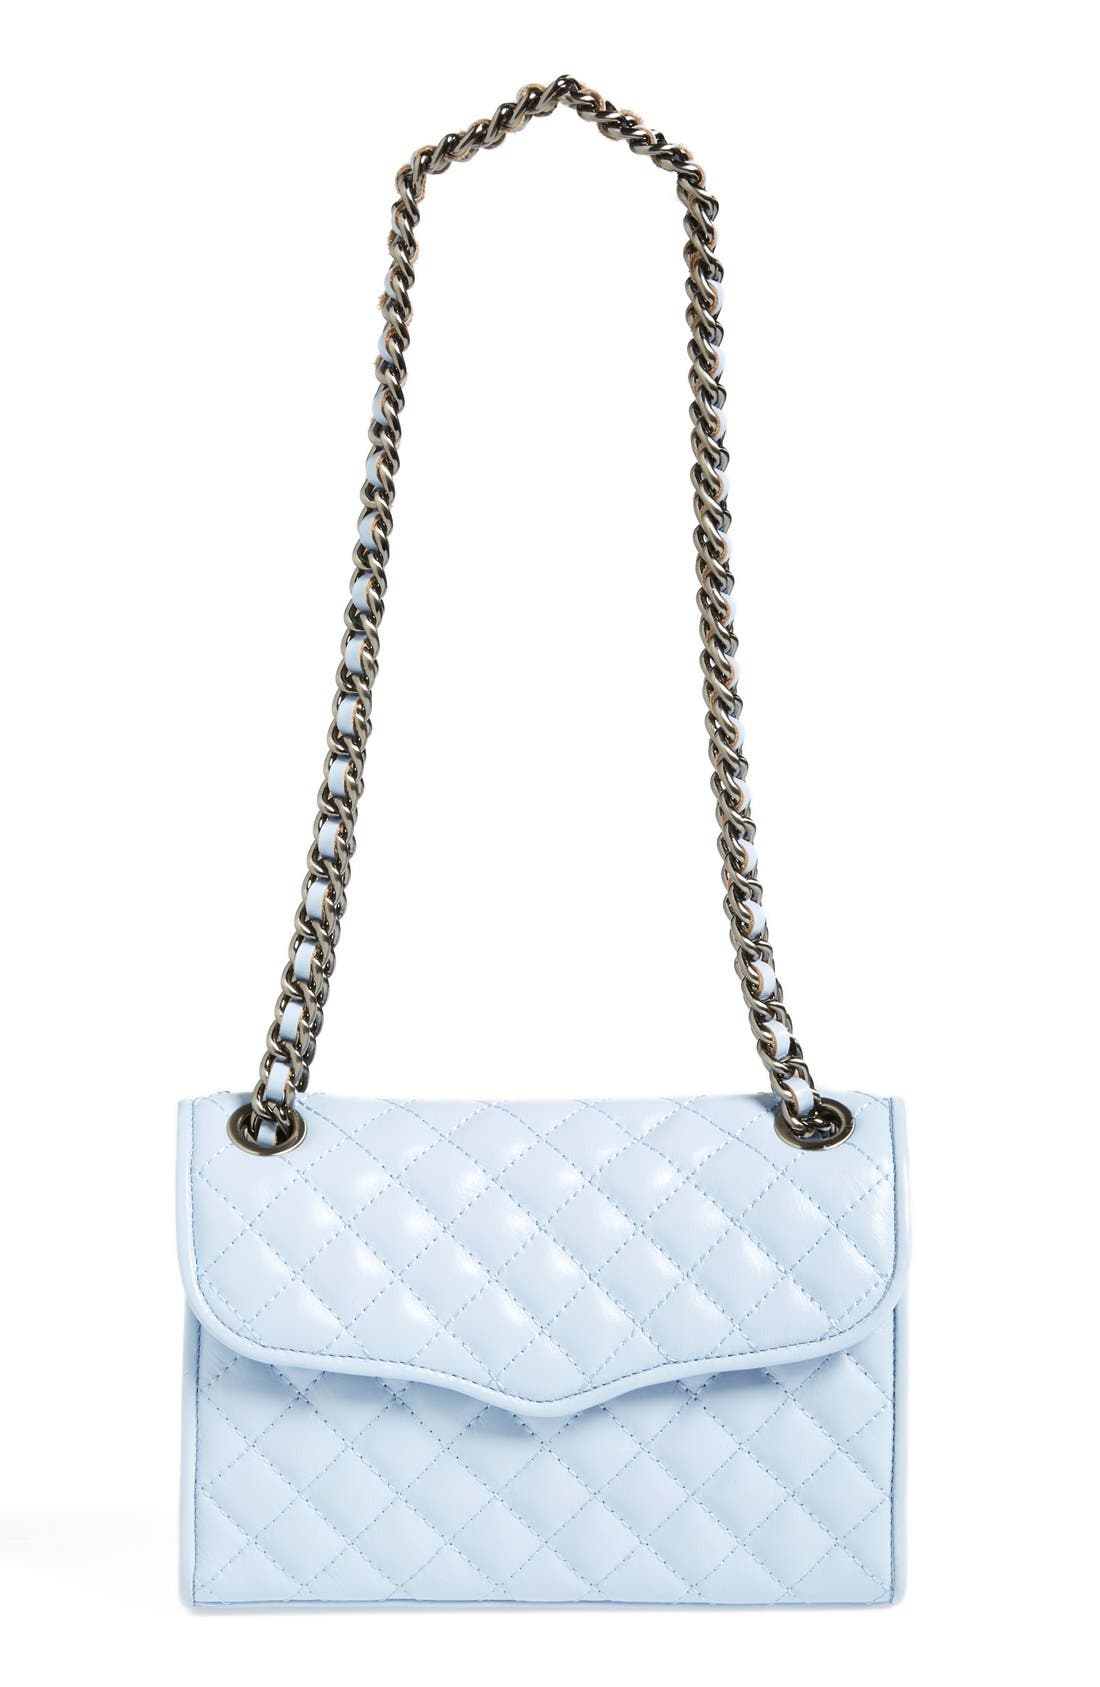 Alternate Image 1 Selected - Rebecca Minkoff 'Quilted Mini Affair' Crossbody Bag